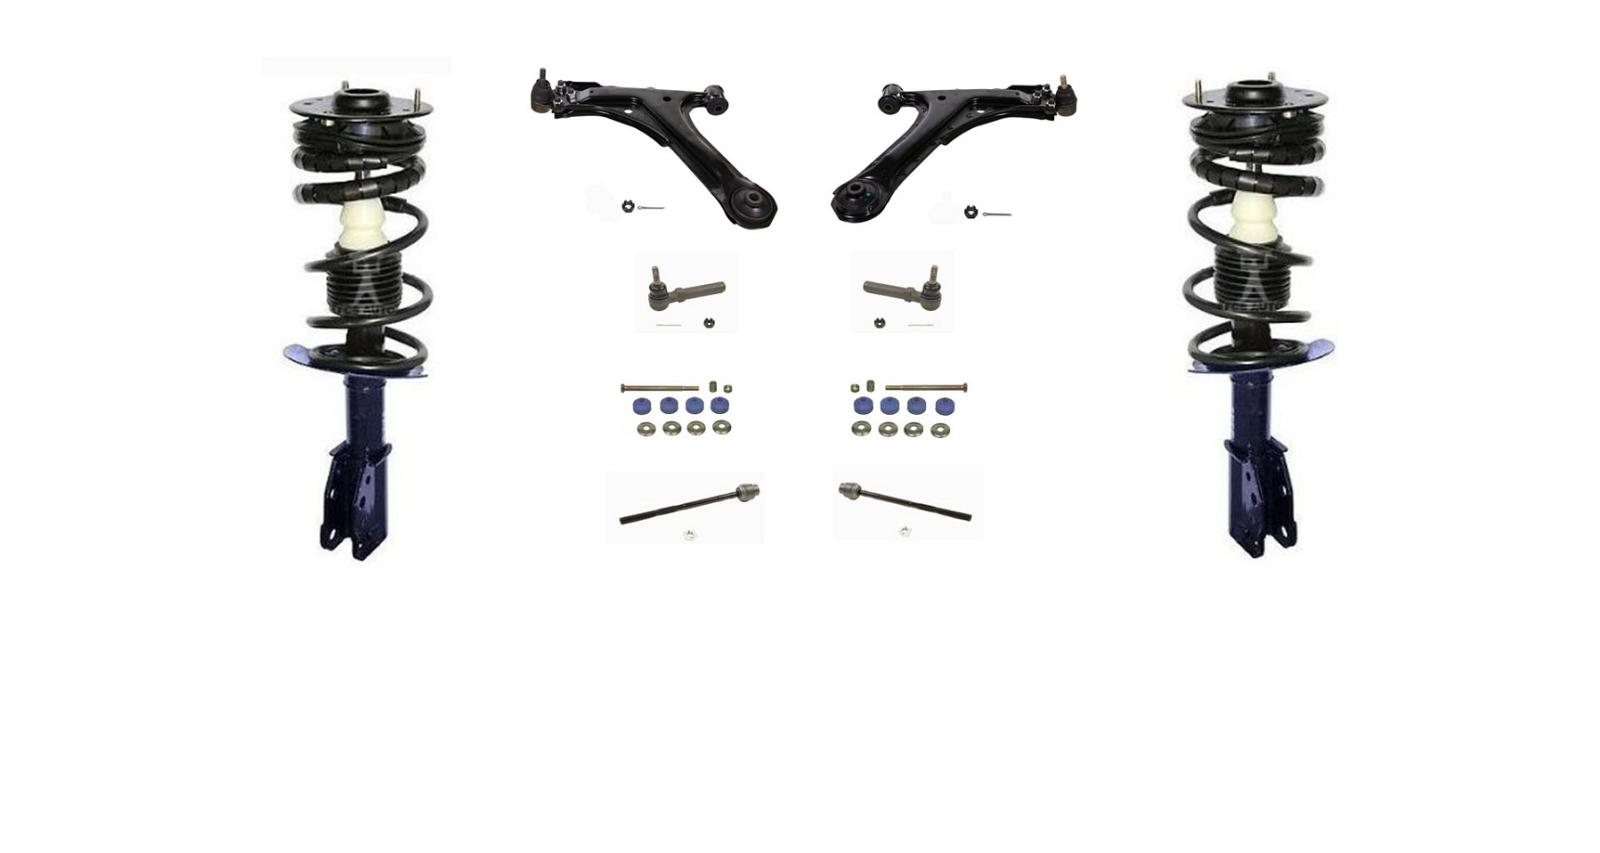 00 05 Cavalier Sunfire Front Quick Spring Strut And Mount Control Arms 10pc Kit